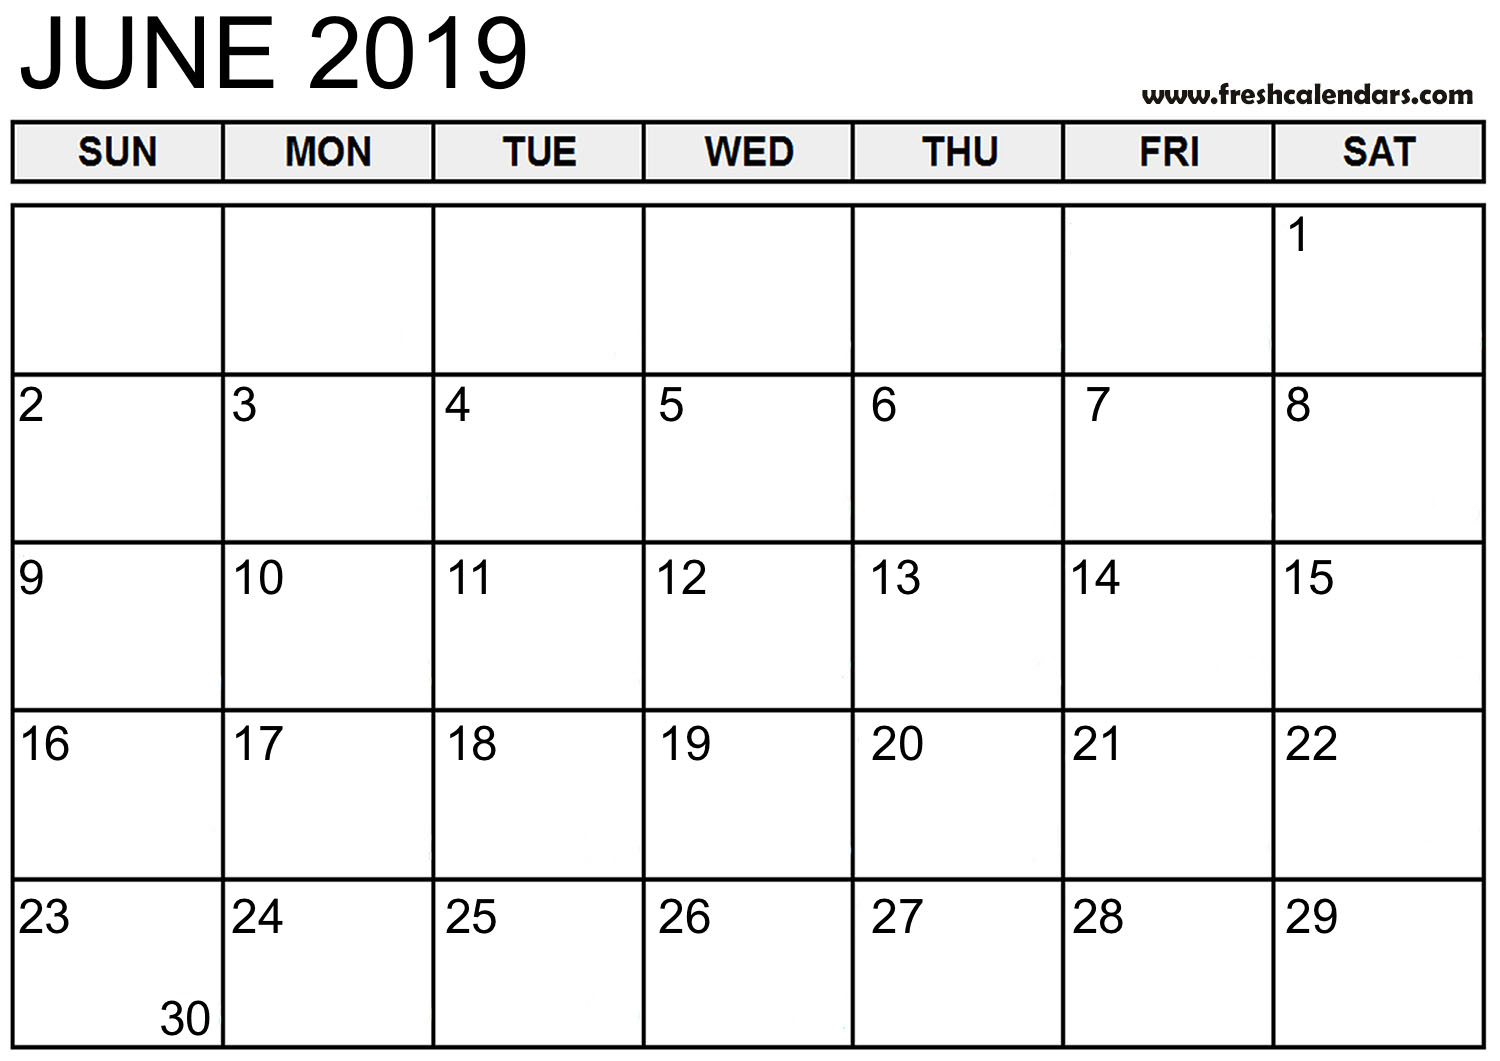 graphic regarding Printable June known as June 2019 Calendar Printable - Refreshing Calendars